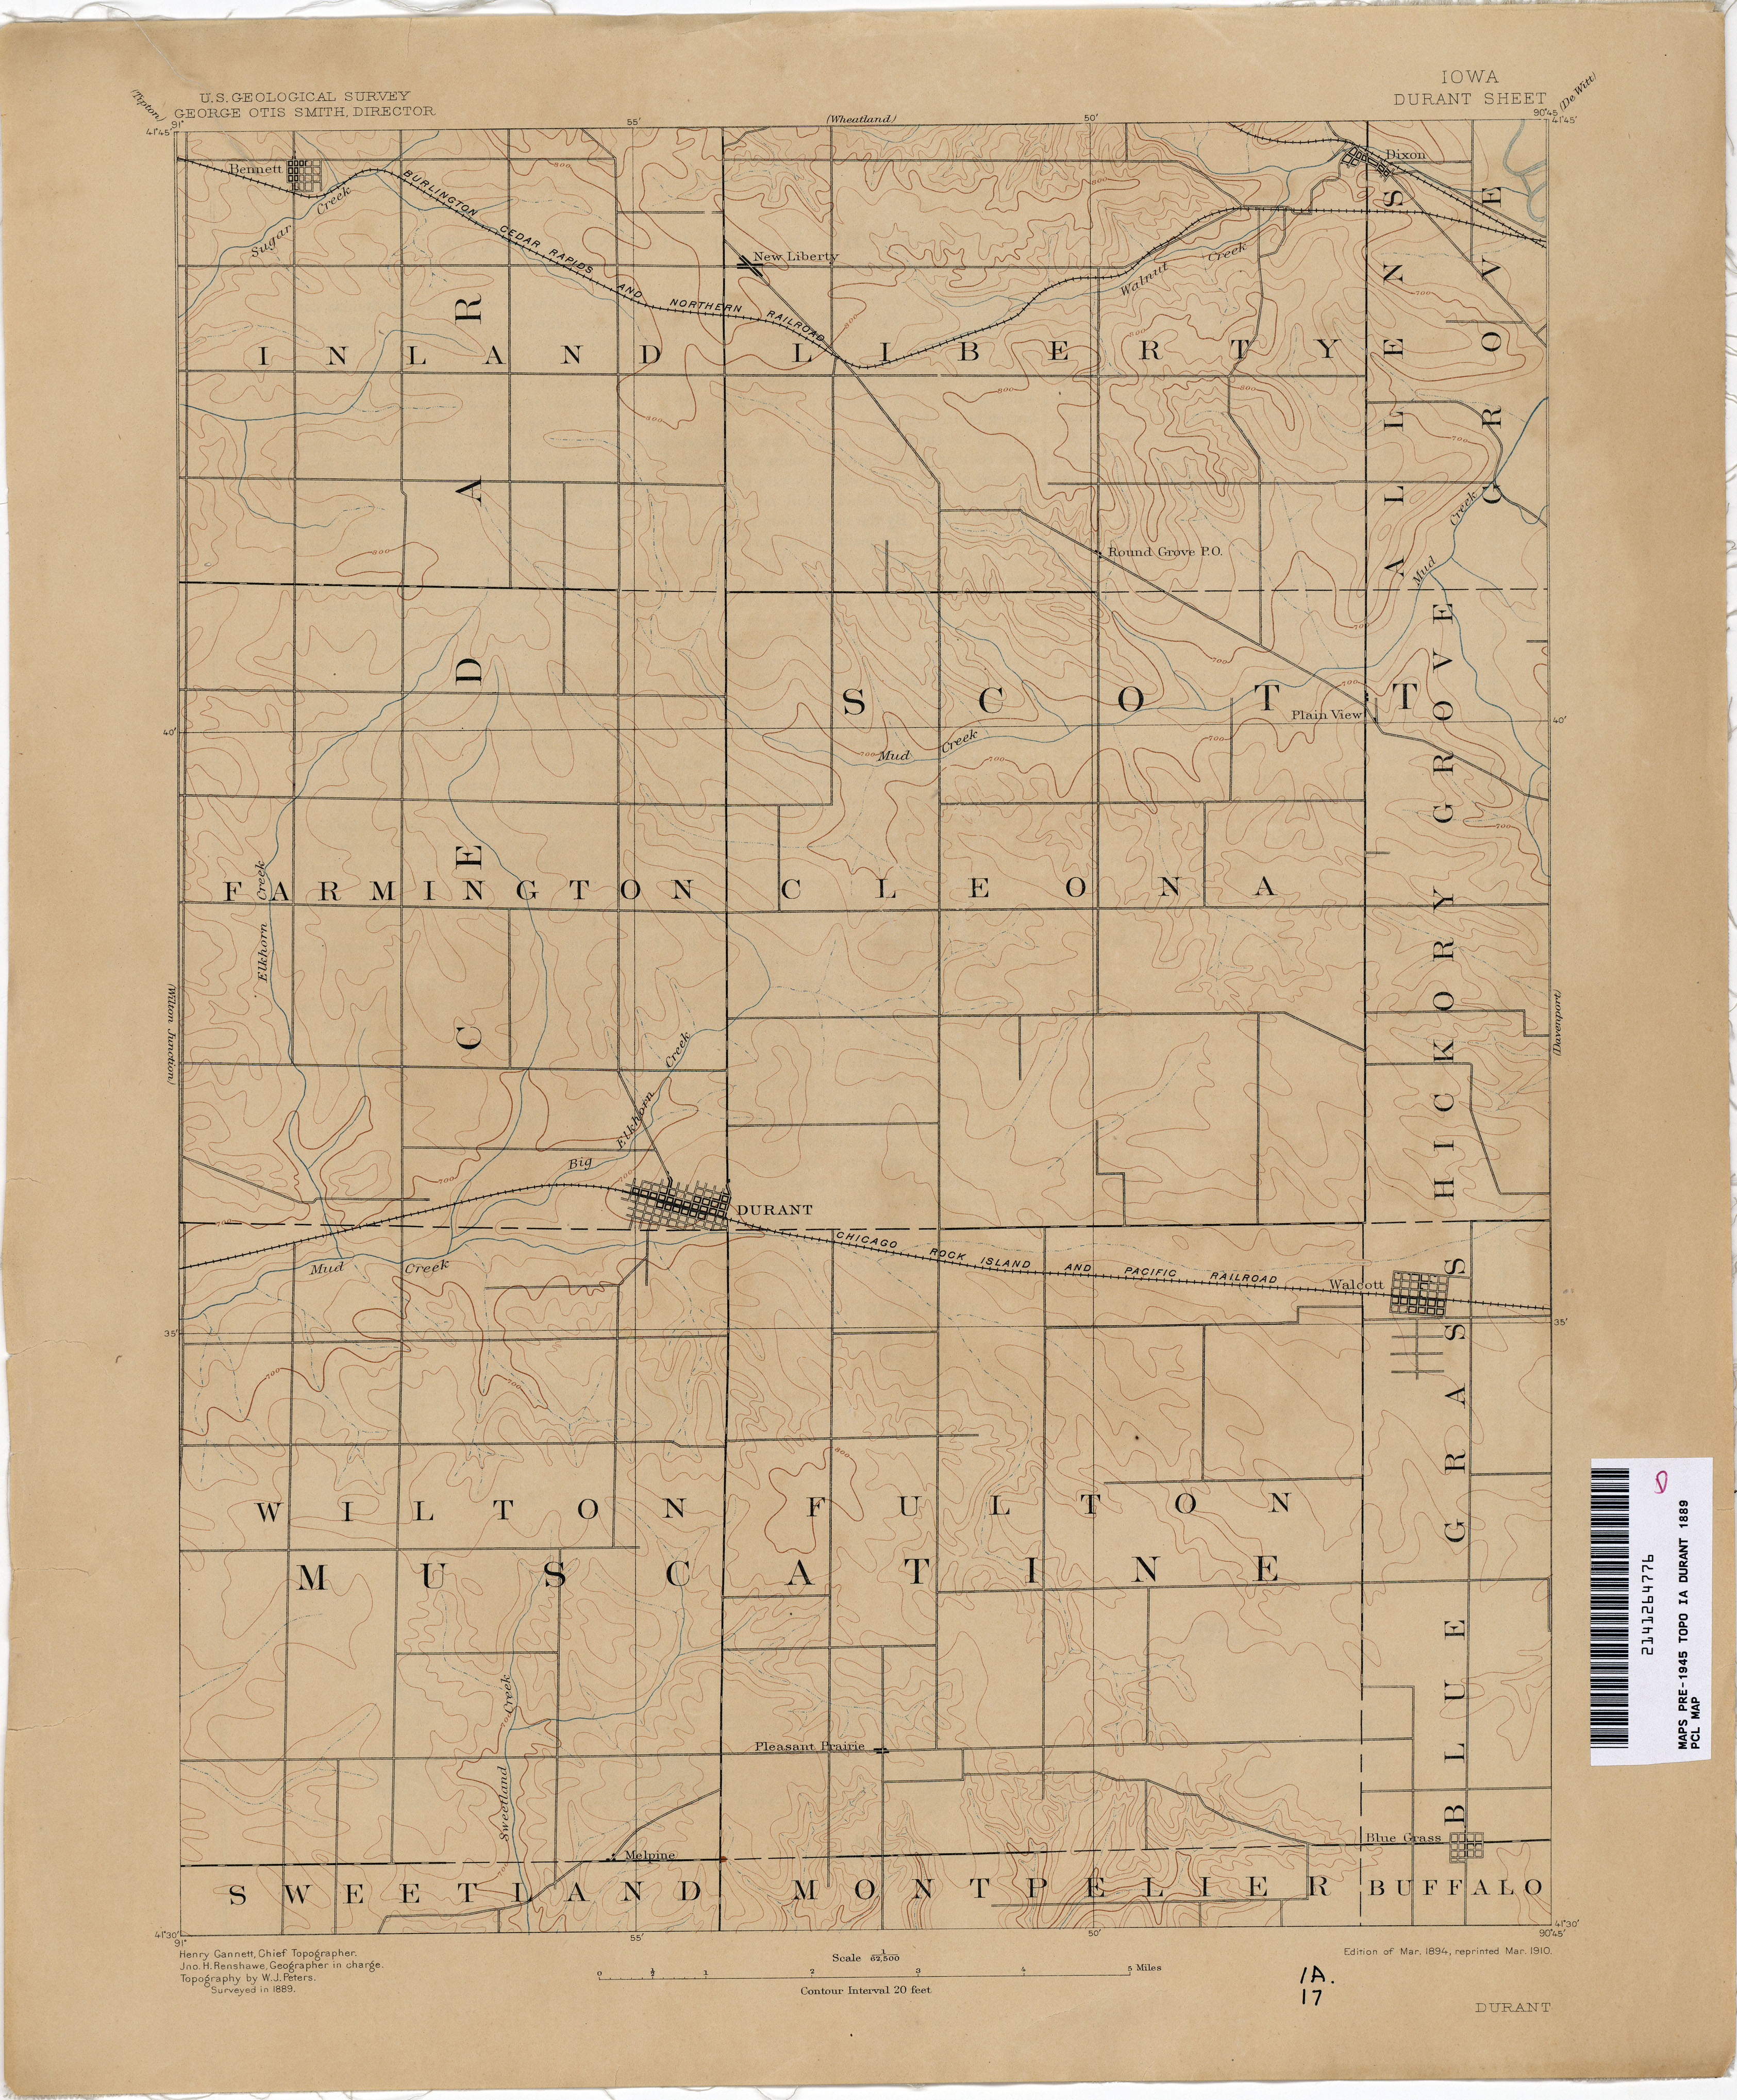 Iowa Historical Topographic Maps - Perry-Castañeda Map Collection on